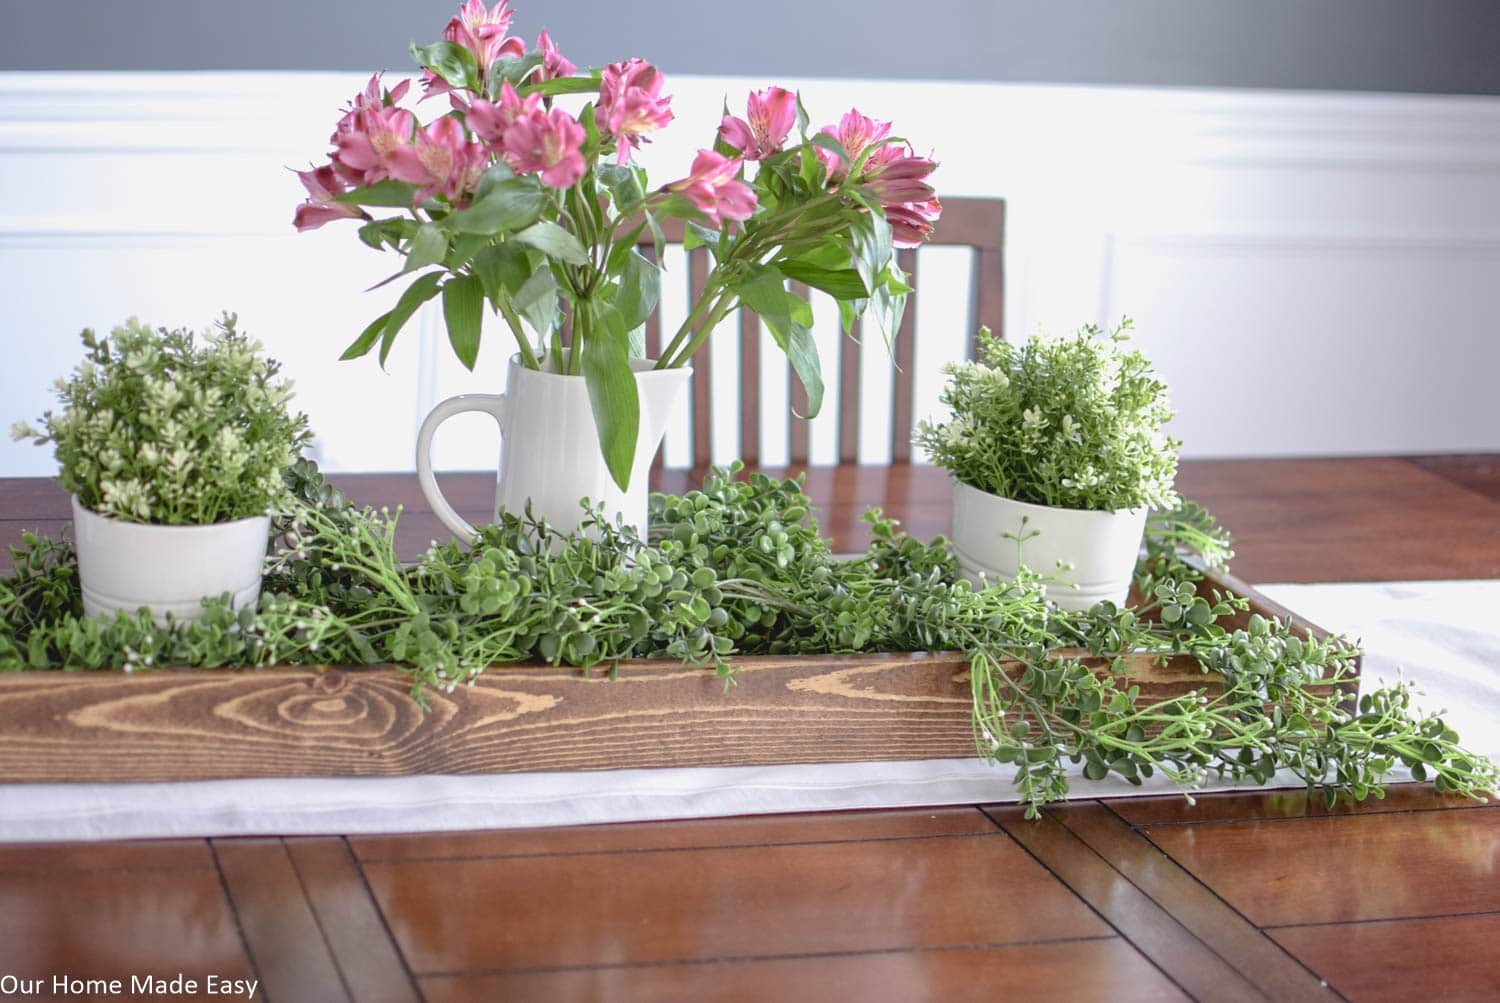 Add some height in your Spring centerpiece with vases. I chose simple white porcelain vases